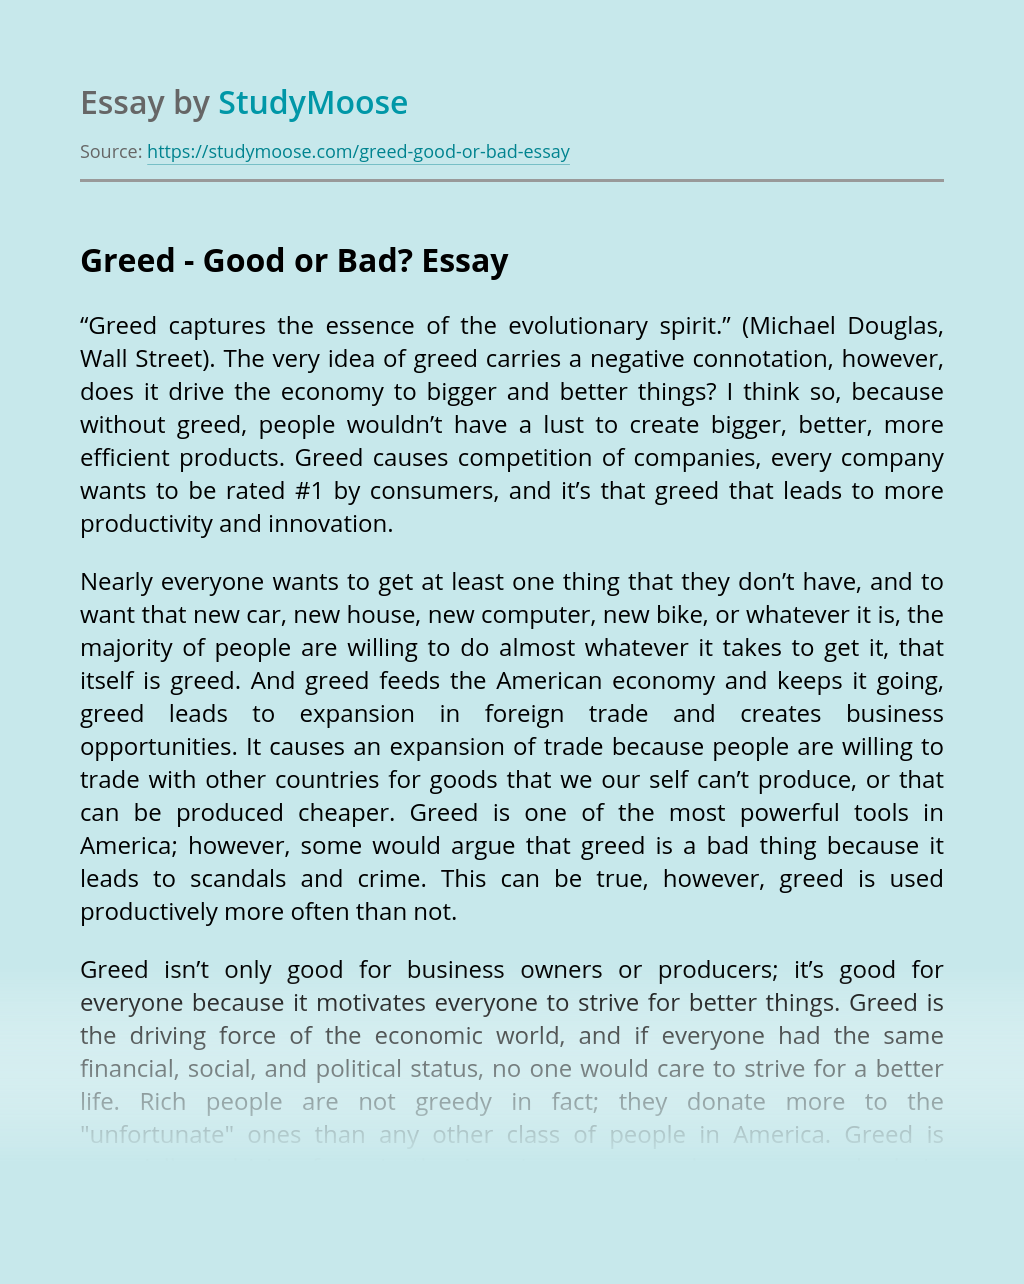 Essay about greed